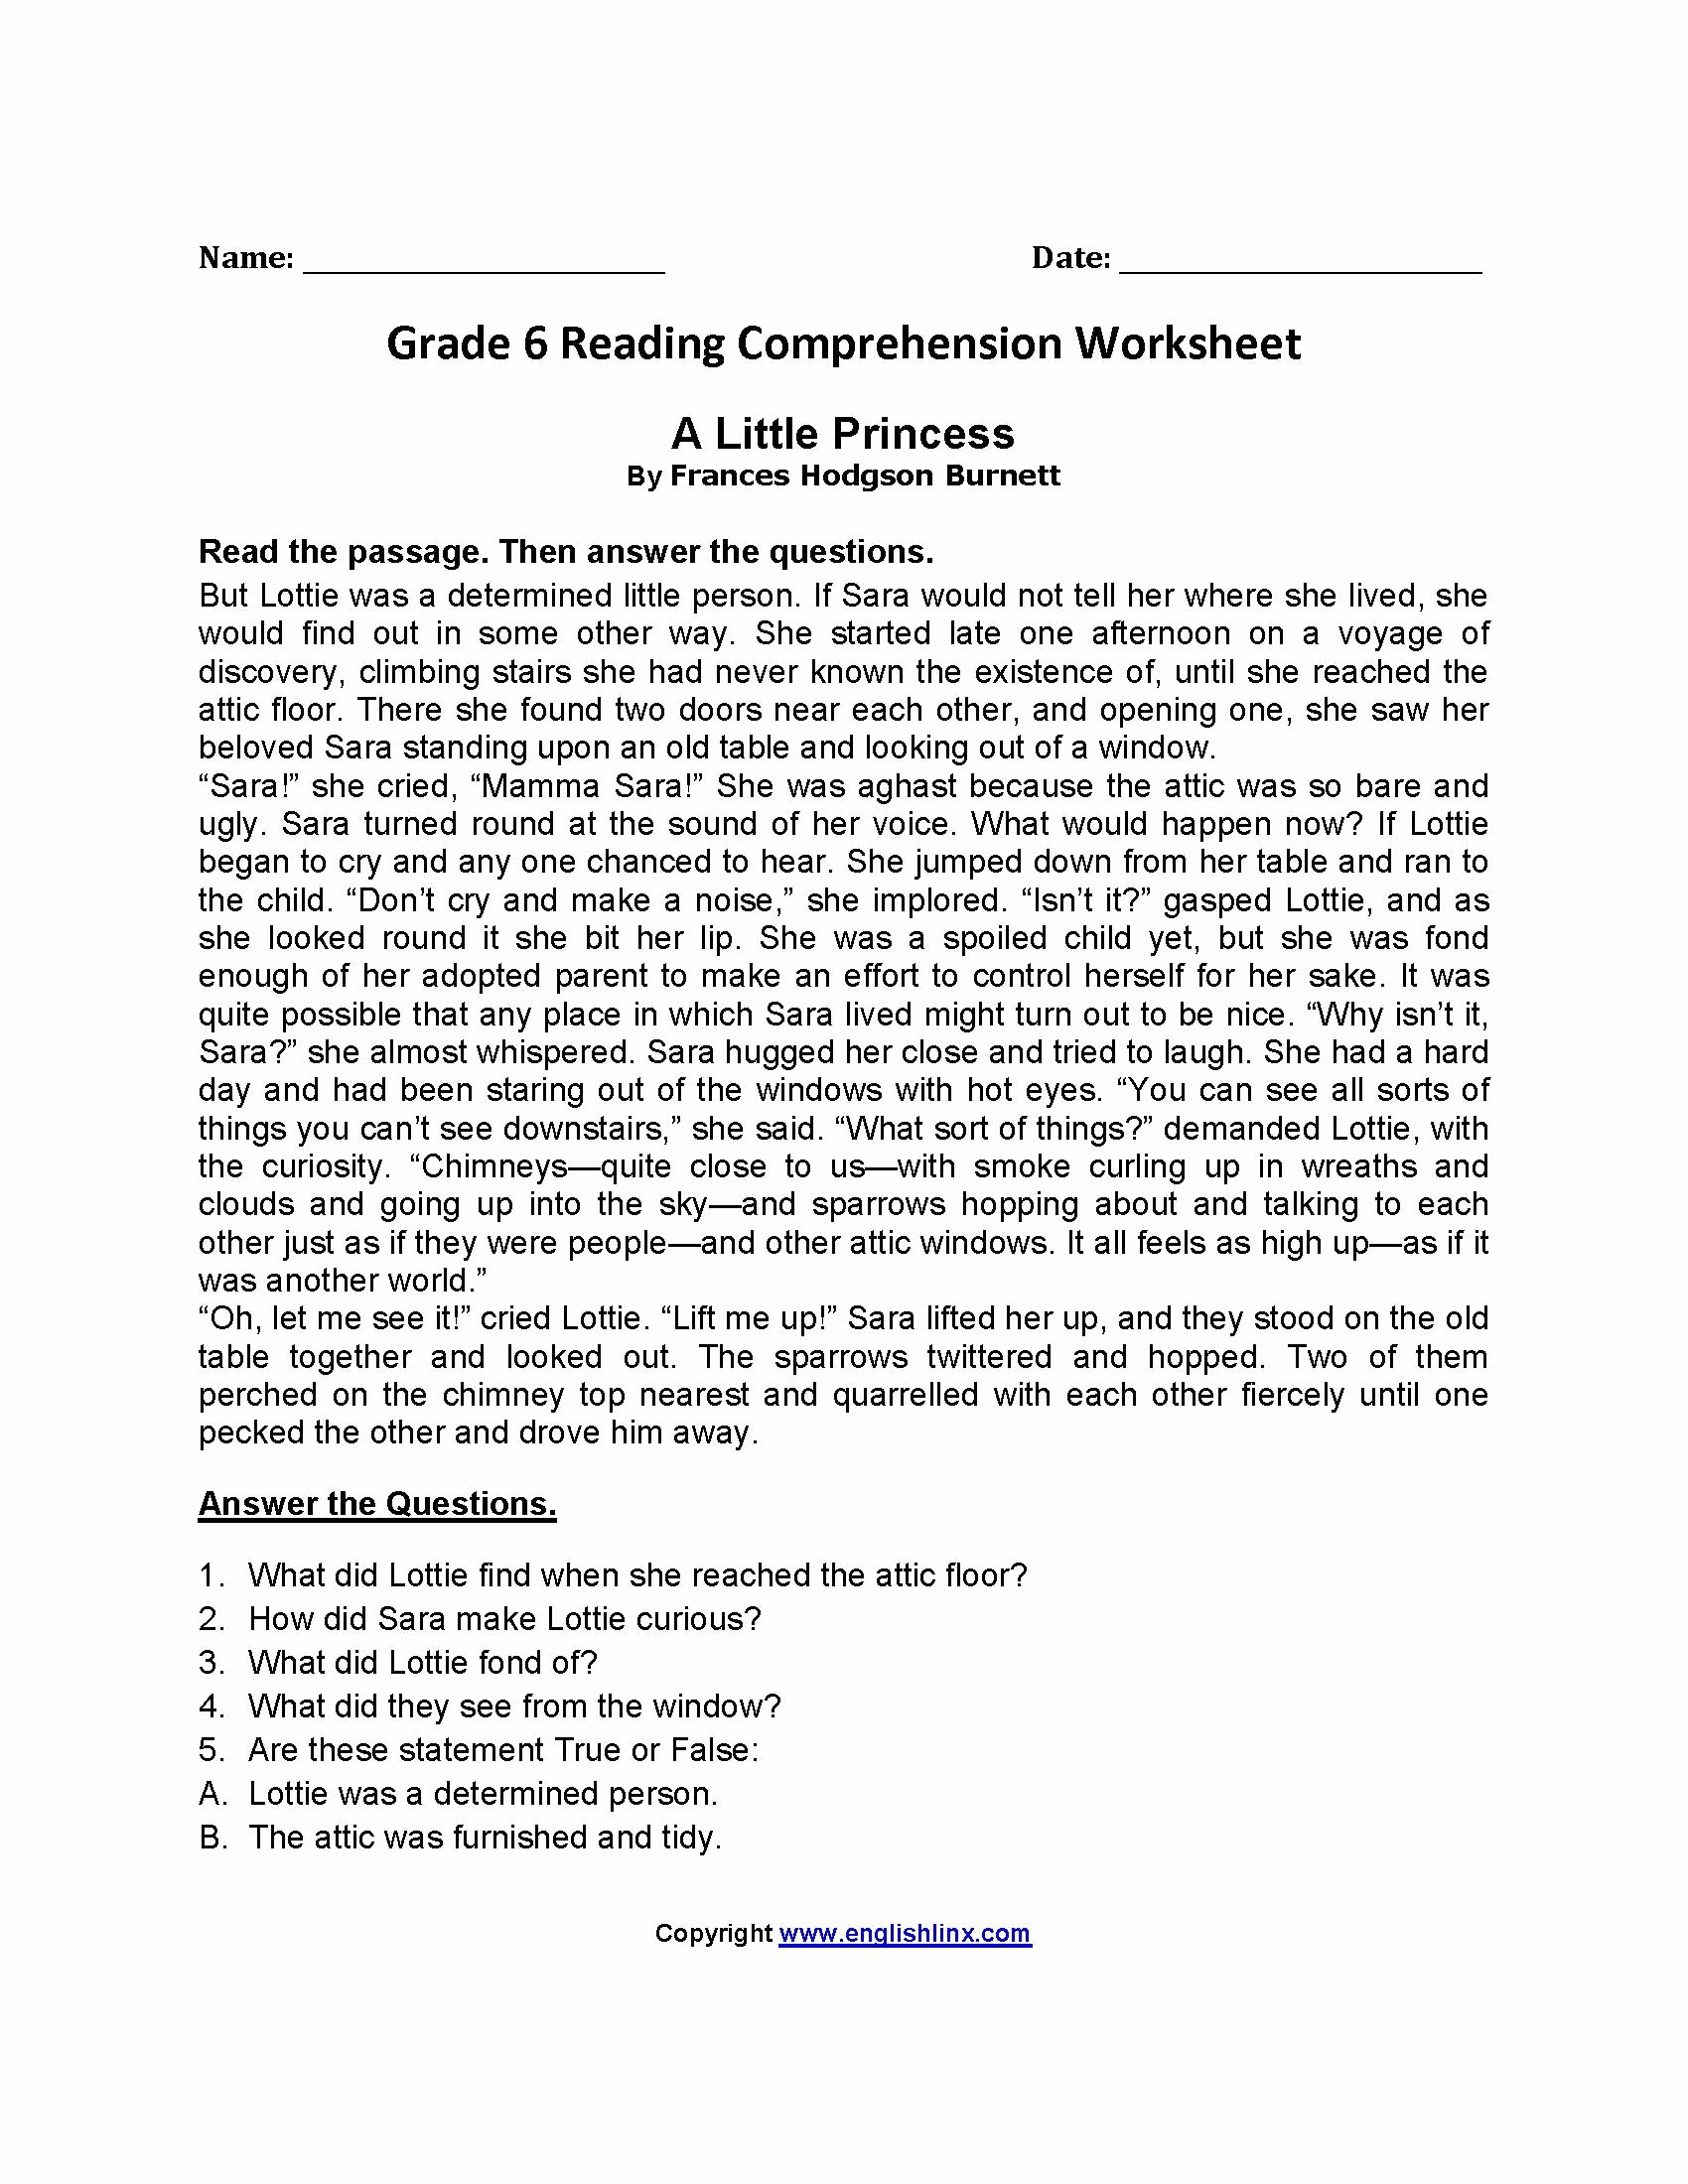 Comprehension Worksheets for Grade 6 Free Free Printable Reading Worksheets for Grade 6 2 In 2020